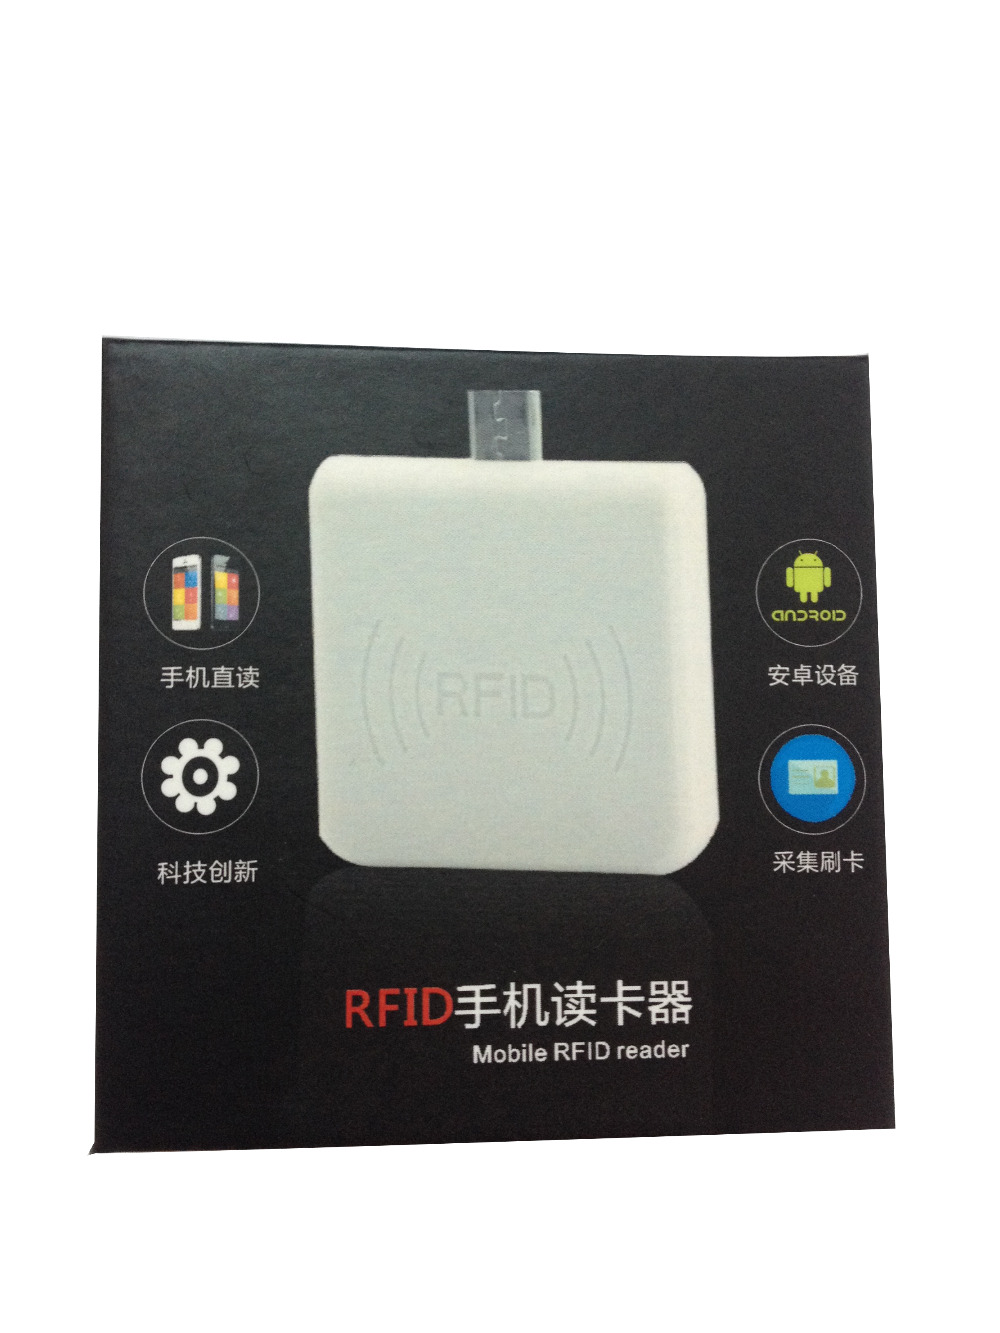 2016 Micro USB NFC Reader 13.56Mhz RFID Proximity Sensor Smart Card Reader 4/7 Bytes UID Adaptible For Android Linux Windows